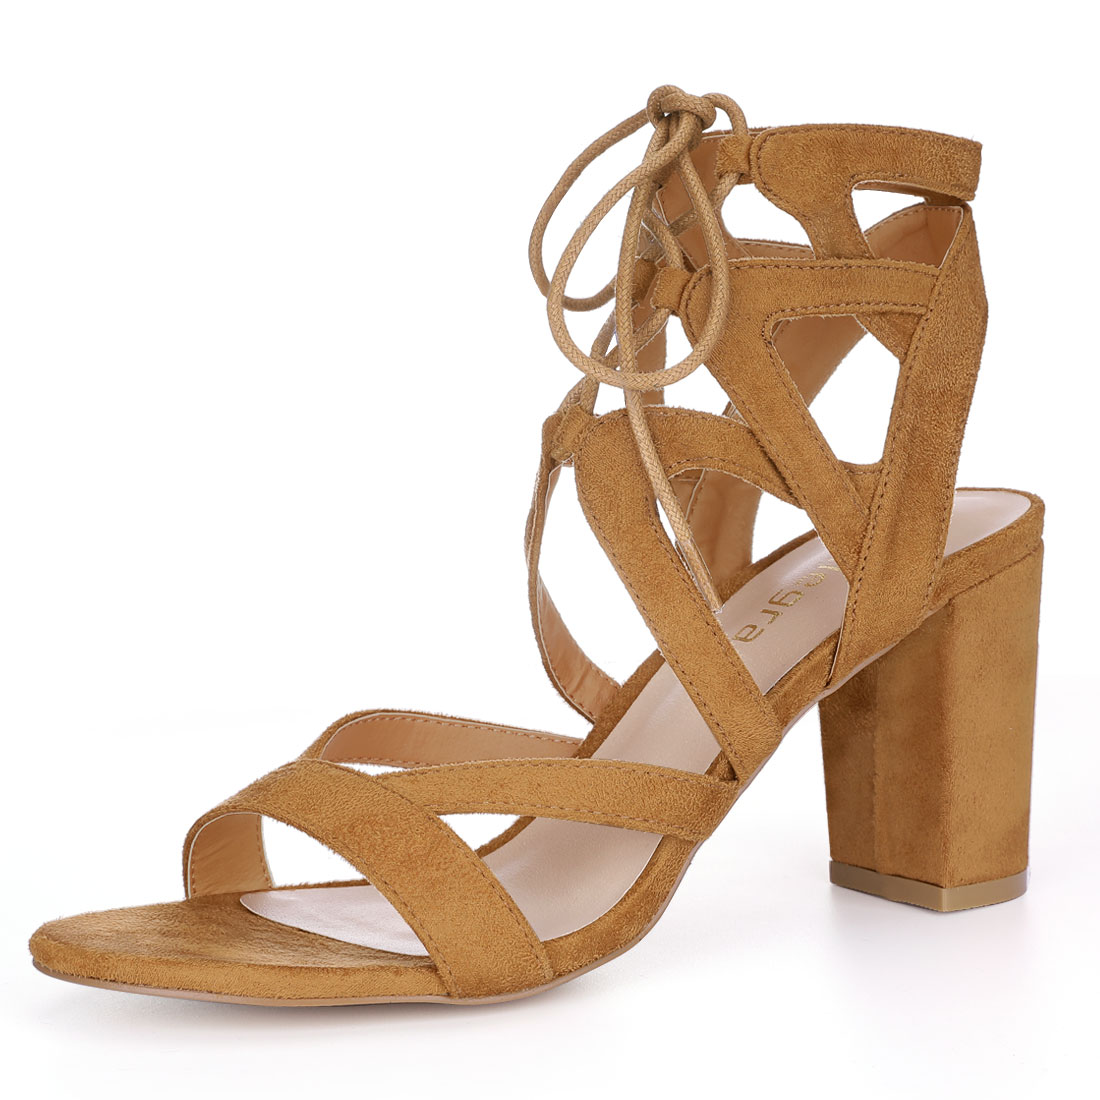 Allegra K Women Cutout Strappy Chunky Heel Lace-Up Sandals Brown US 10